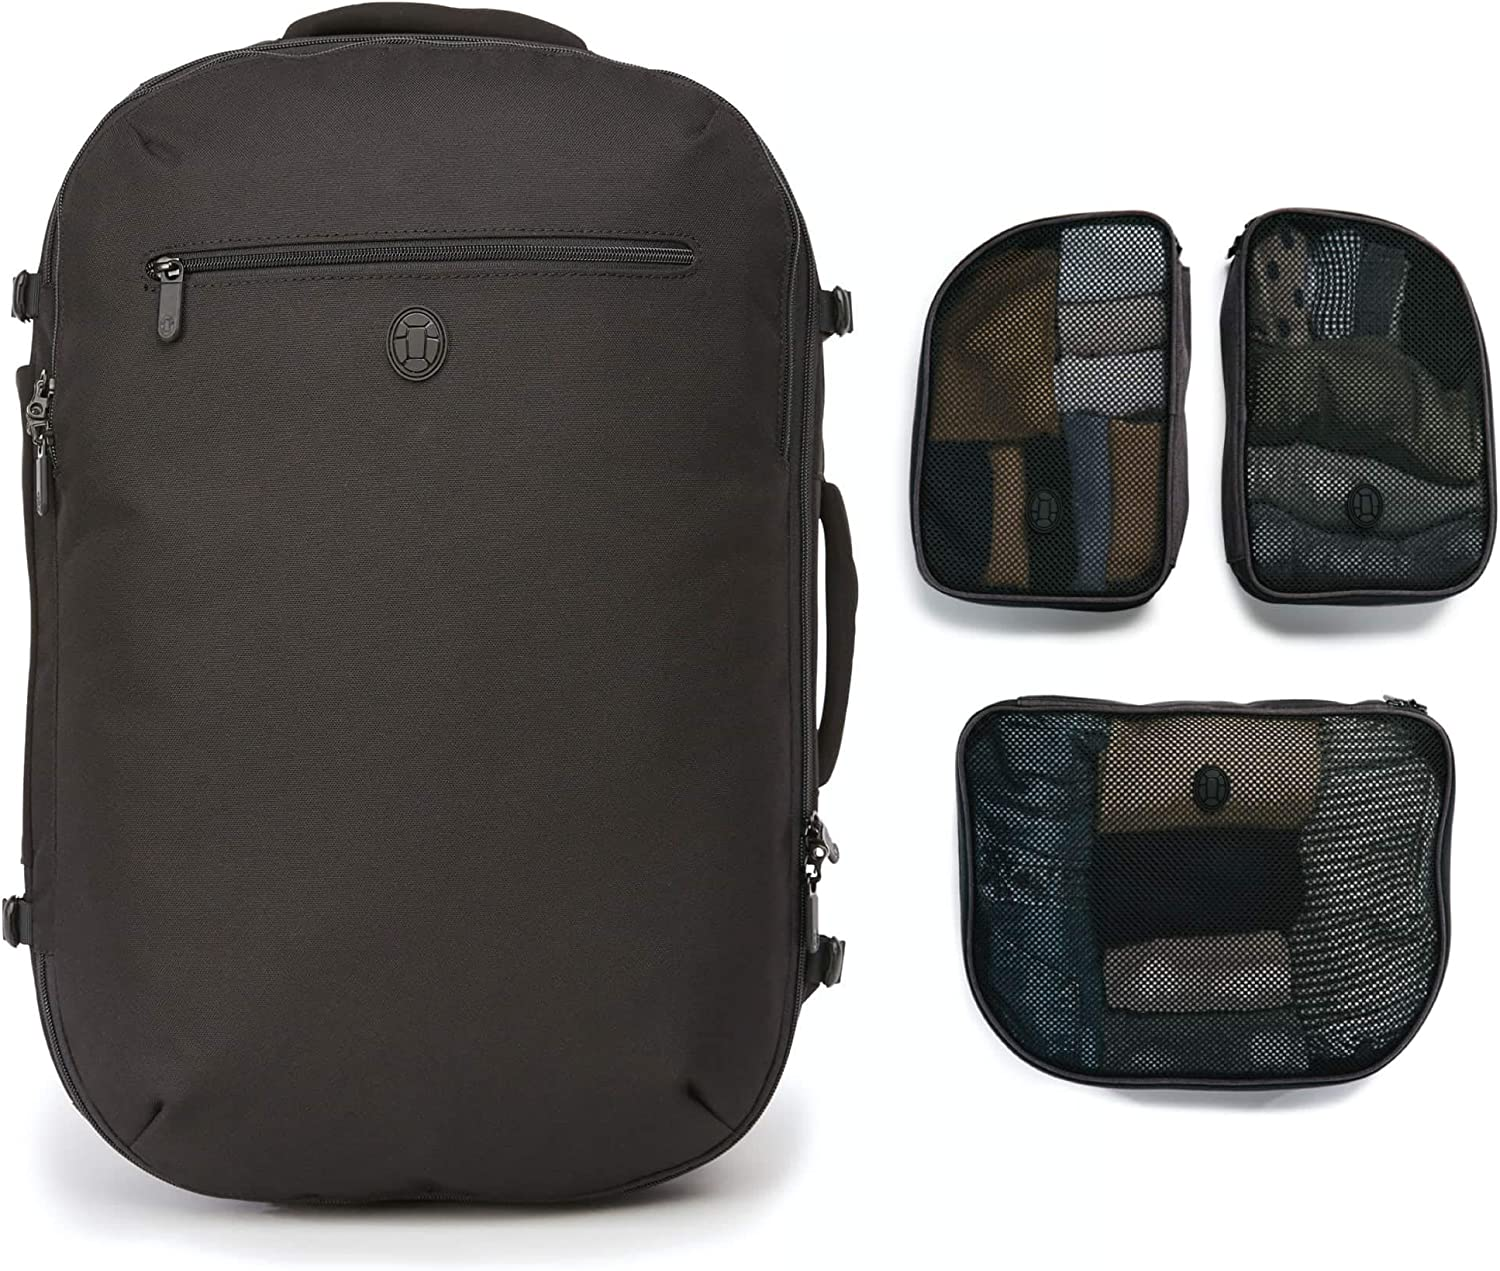 Tortuga Setout 45L Surprise price Carryon cheap Travel with Backpack B Cubes Packing